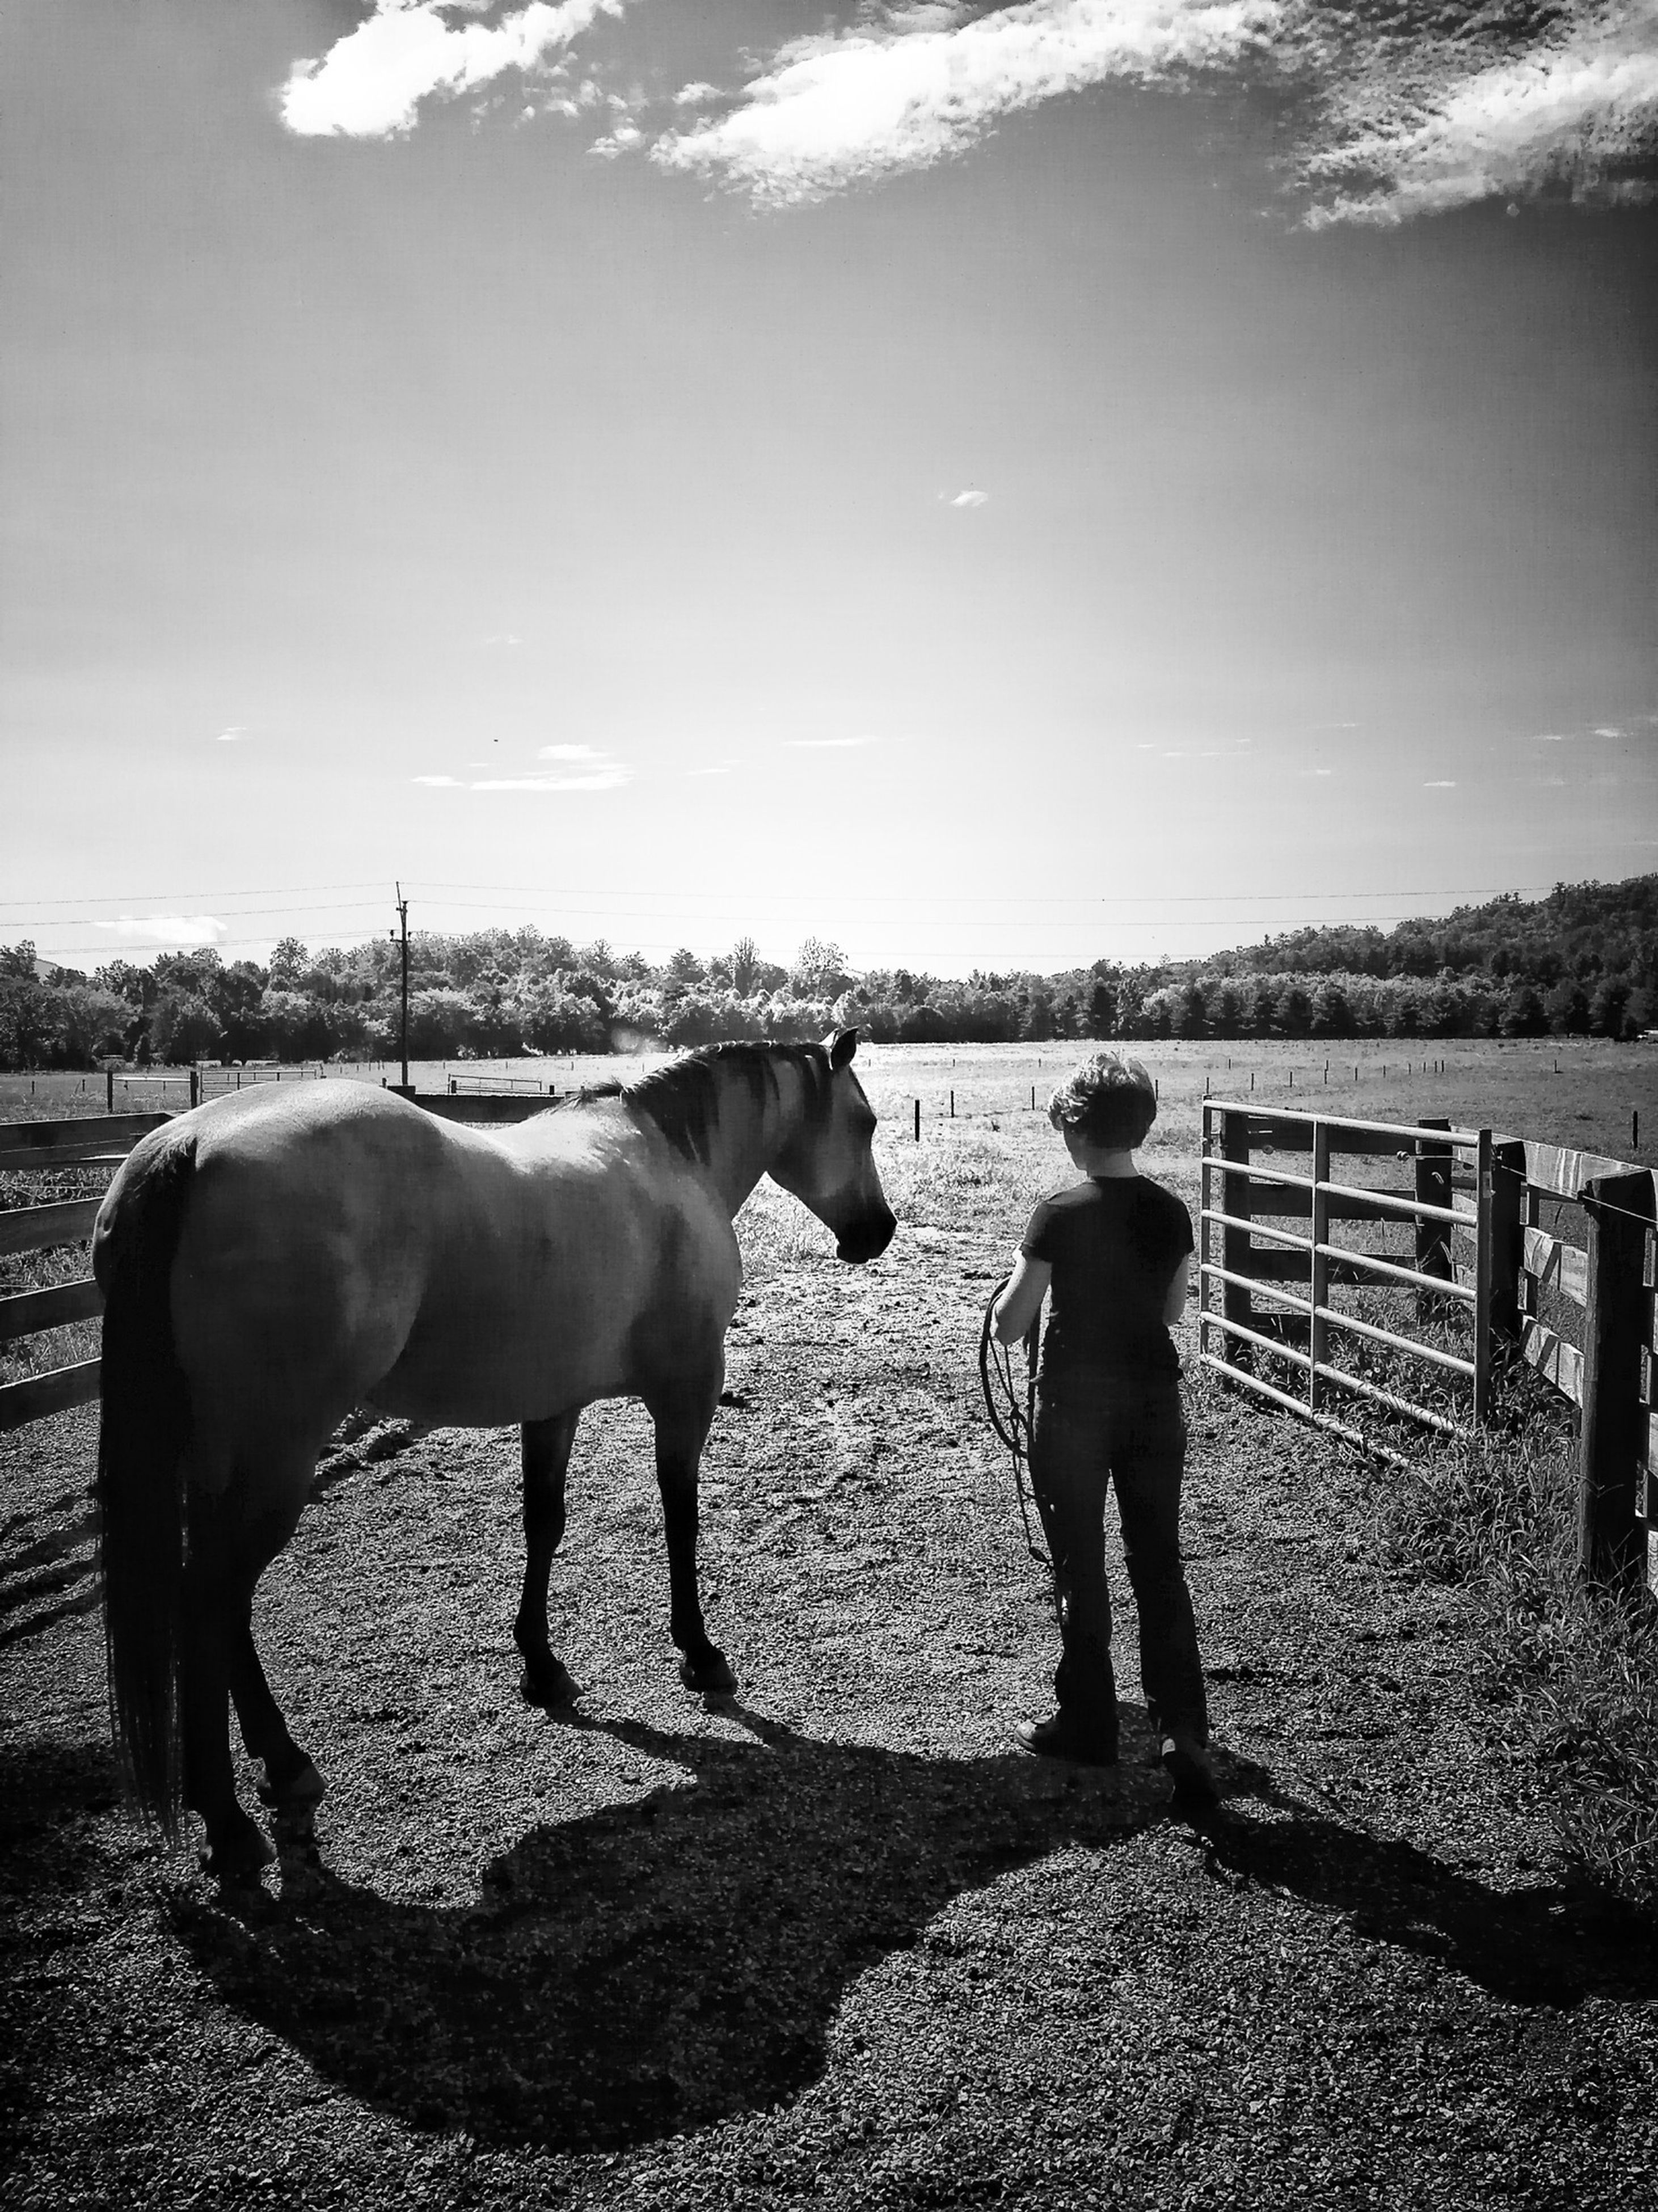 domestic animals, animal themes, mammal, horse, livestock, standing, sky, one animal, full length, pets, two animals, dog, walking, working animal, fence, water, field, herbivorous, tree, nature